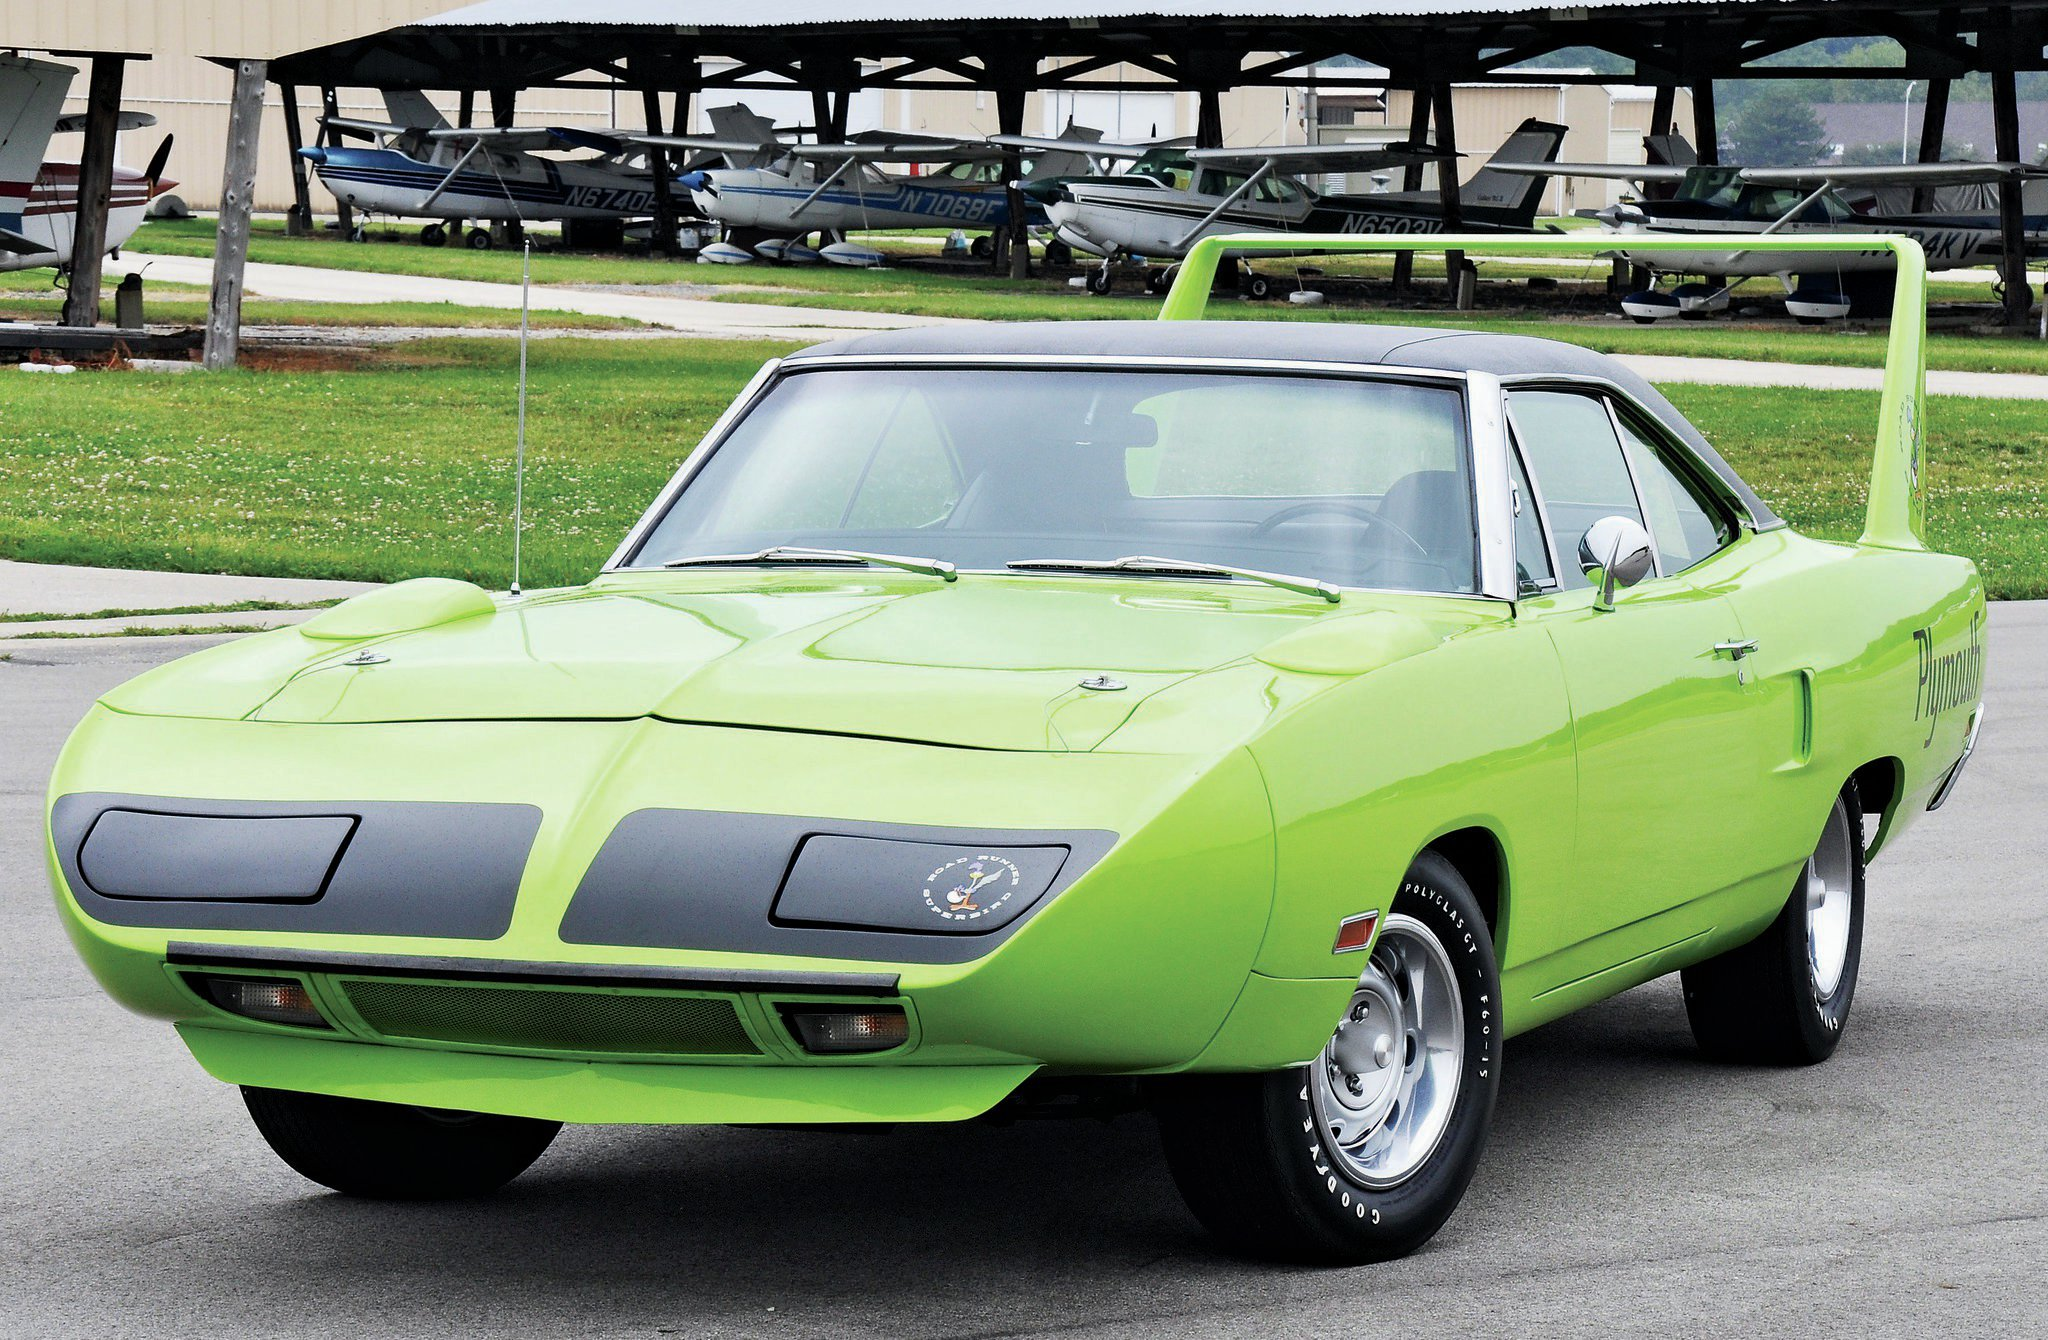 Looking good in Lime Light, the '70 Superbird is an unrestored original car purchased by Dale Laur a few years ago with only 11,390 miles on the clock. The beautiful wing car is powered by a 426 Hemi with a four-speed transmission.